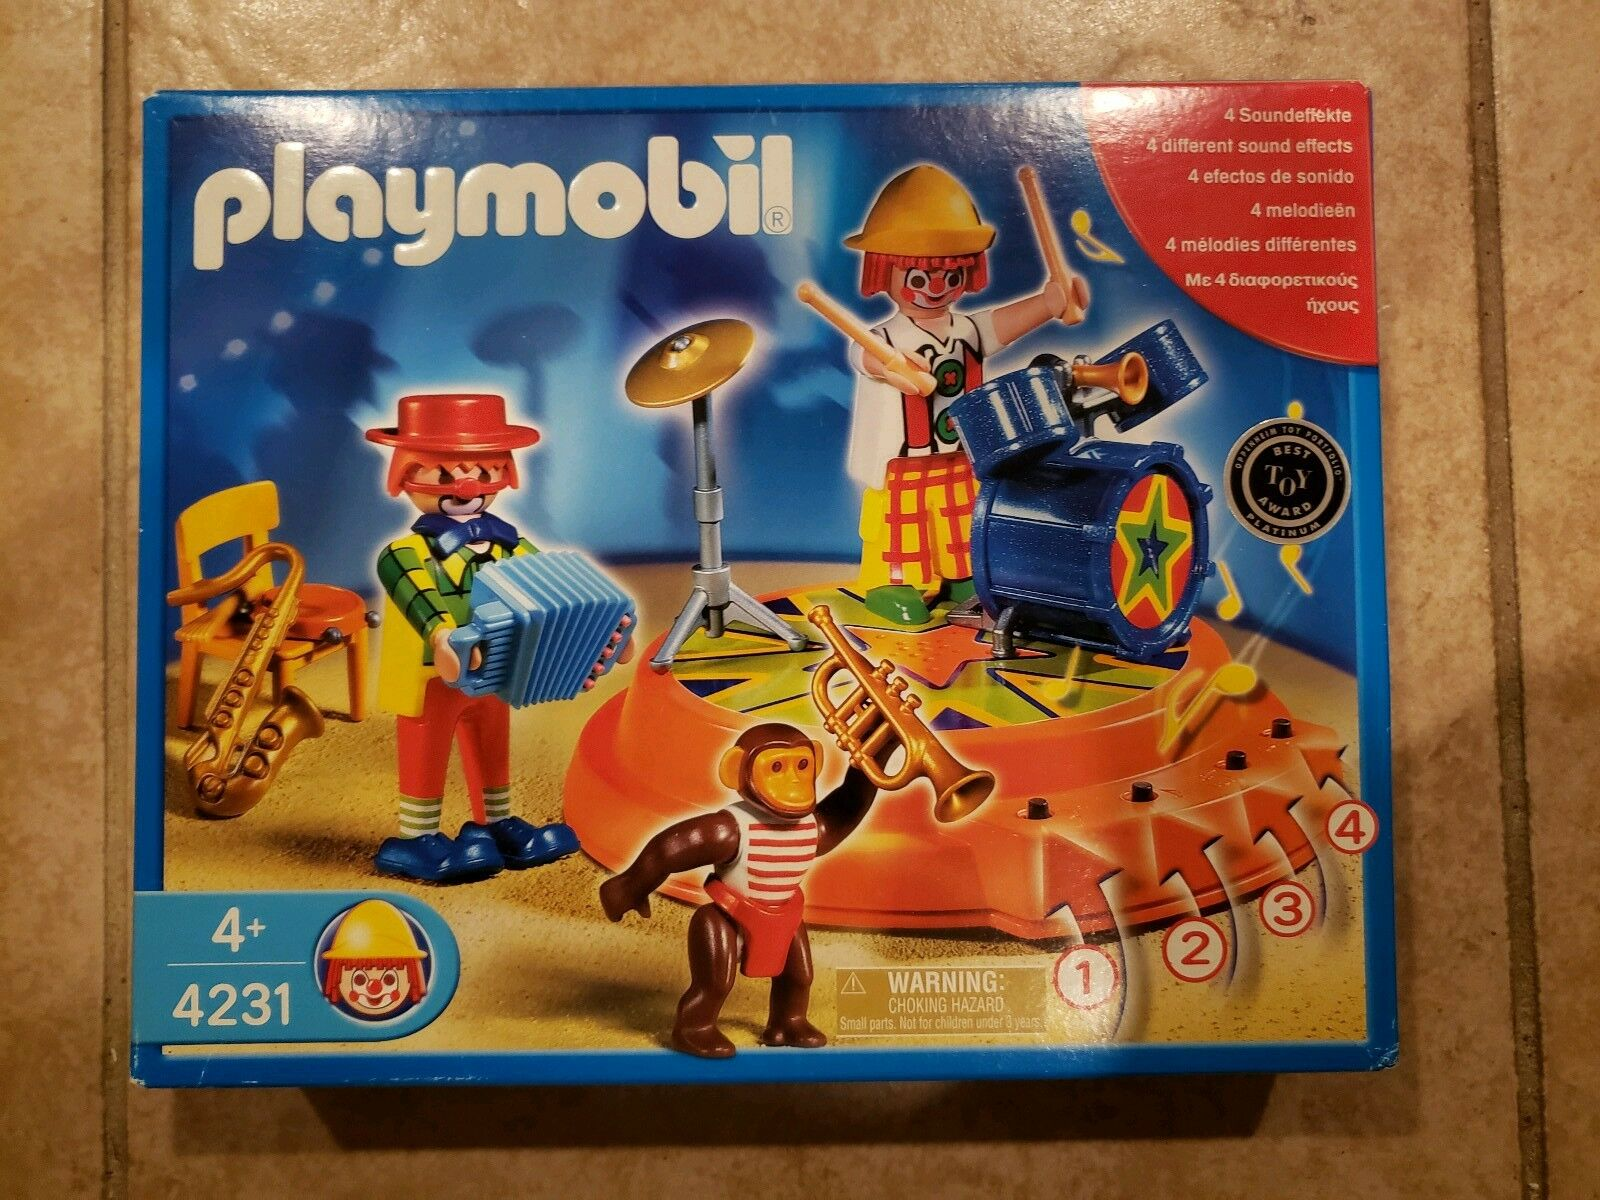 Playmobil 4231 Circus Band with Sound effects